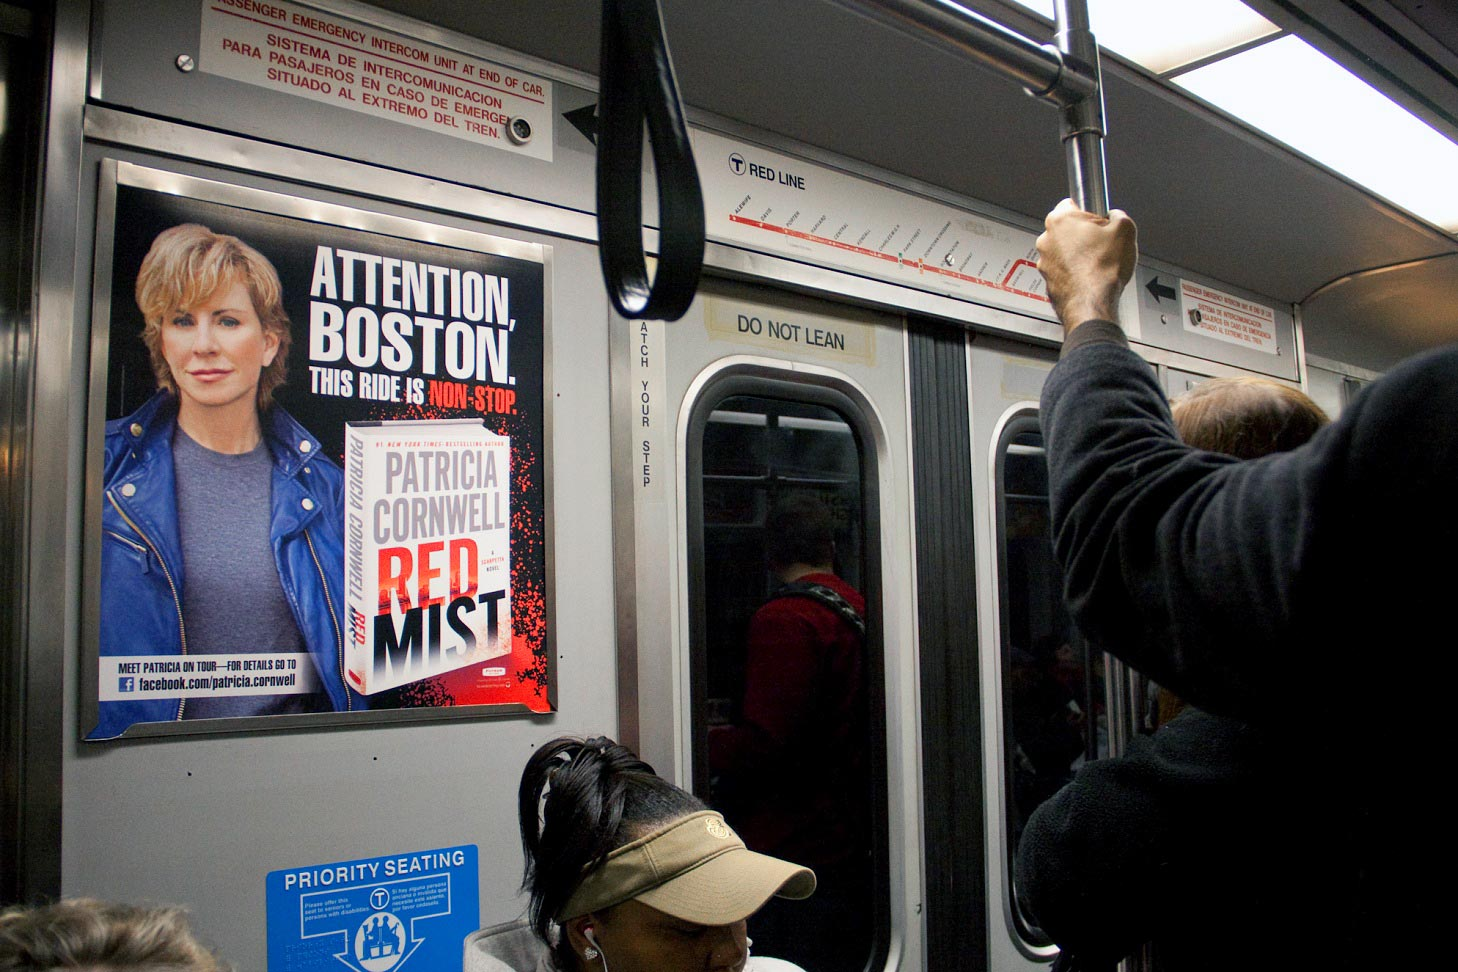 Patricia Cornwell - Red Mist - Boston MBTA Posters